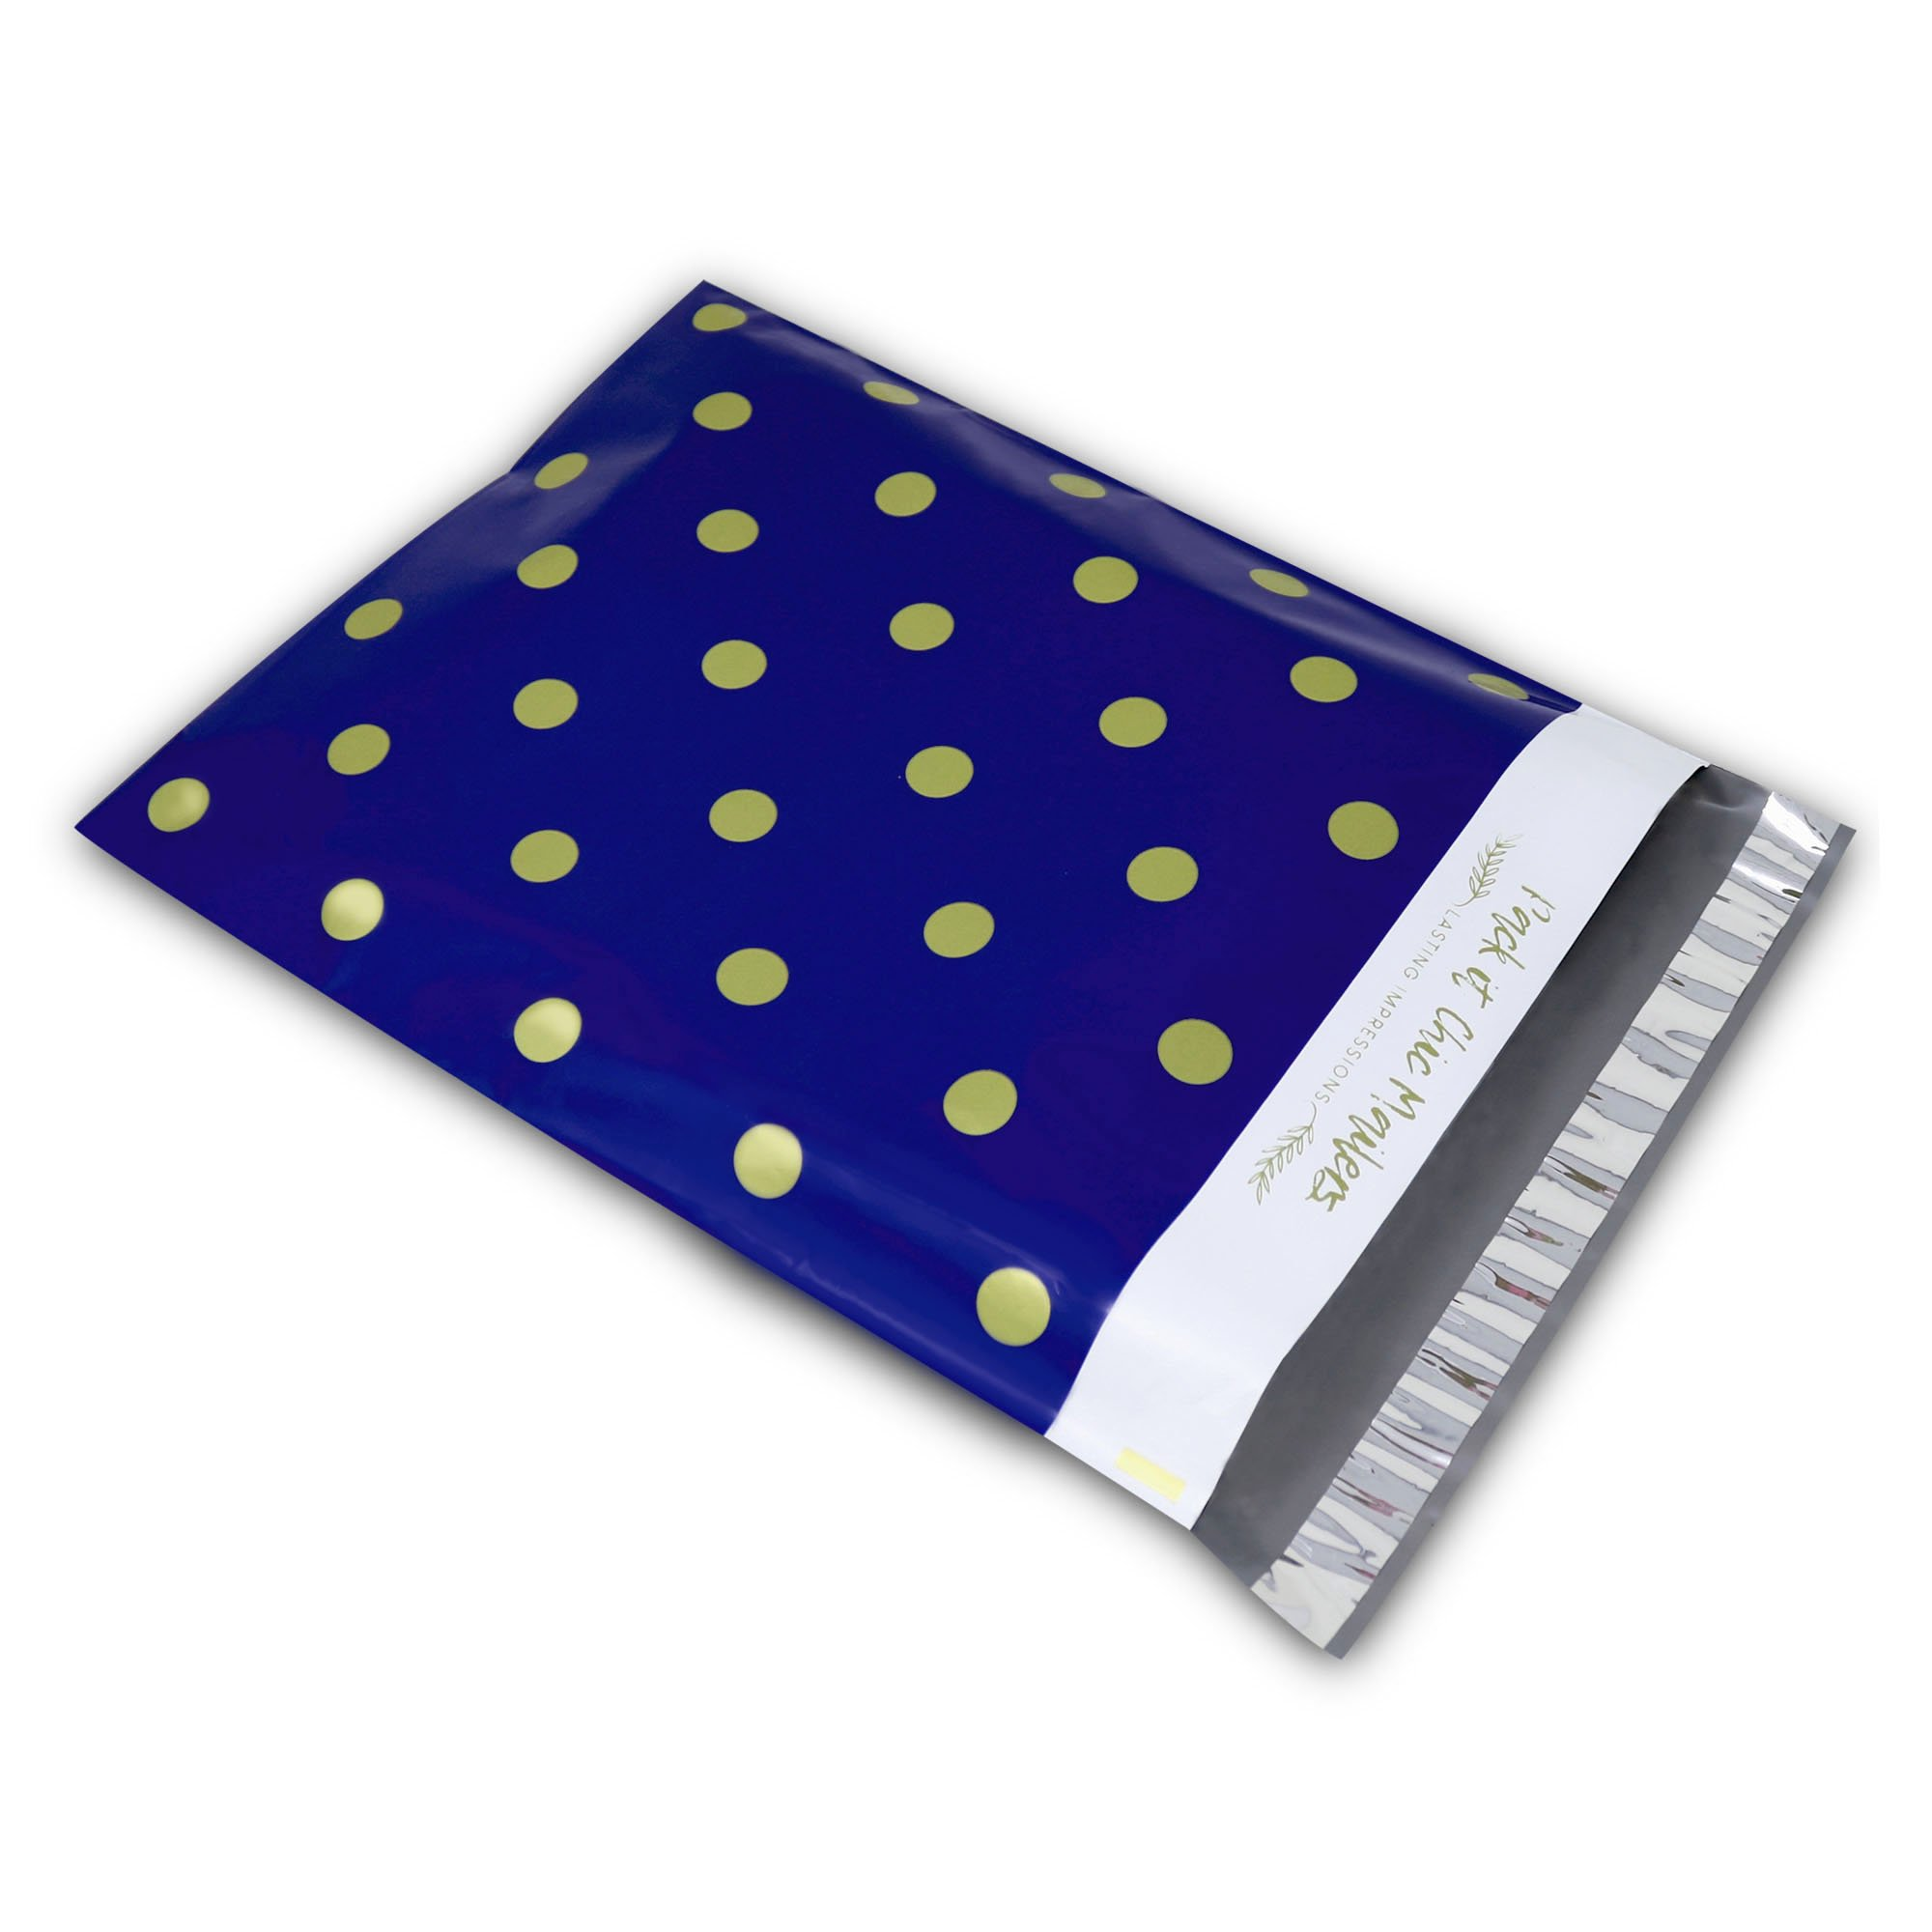 "[ 100-10"" X 13"" ] Navy Polka Dot - Thank You Design Custom Poly Mailer Envelope Shipping Bags, Tear Proof & Powerful Self Seal Adhesive Postal Bags (Other Designs Available) - Pack It Chic by Pack It Chic (Image #4)"